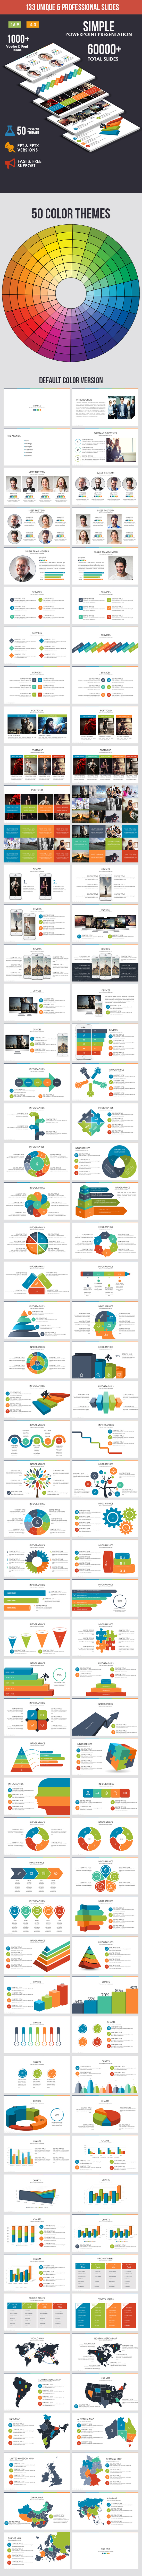 simple powerpoint presentation templateloveishkalsi | graphicriver, Presentation templates